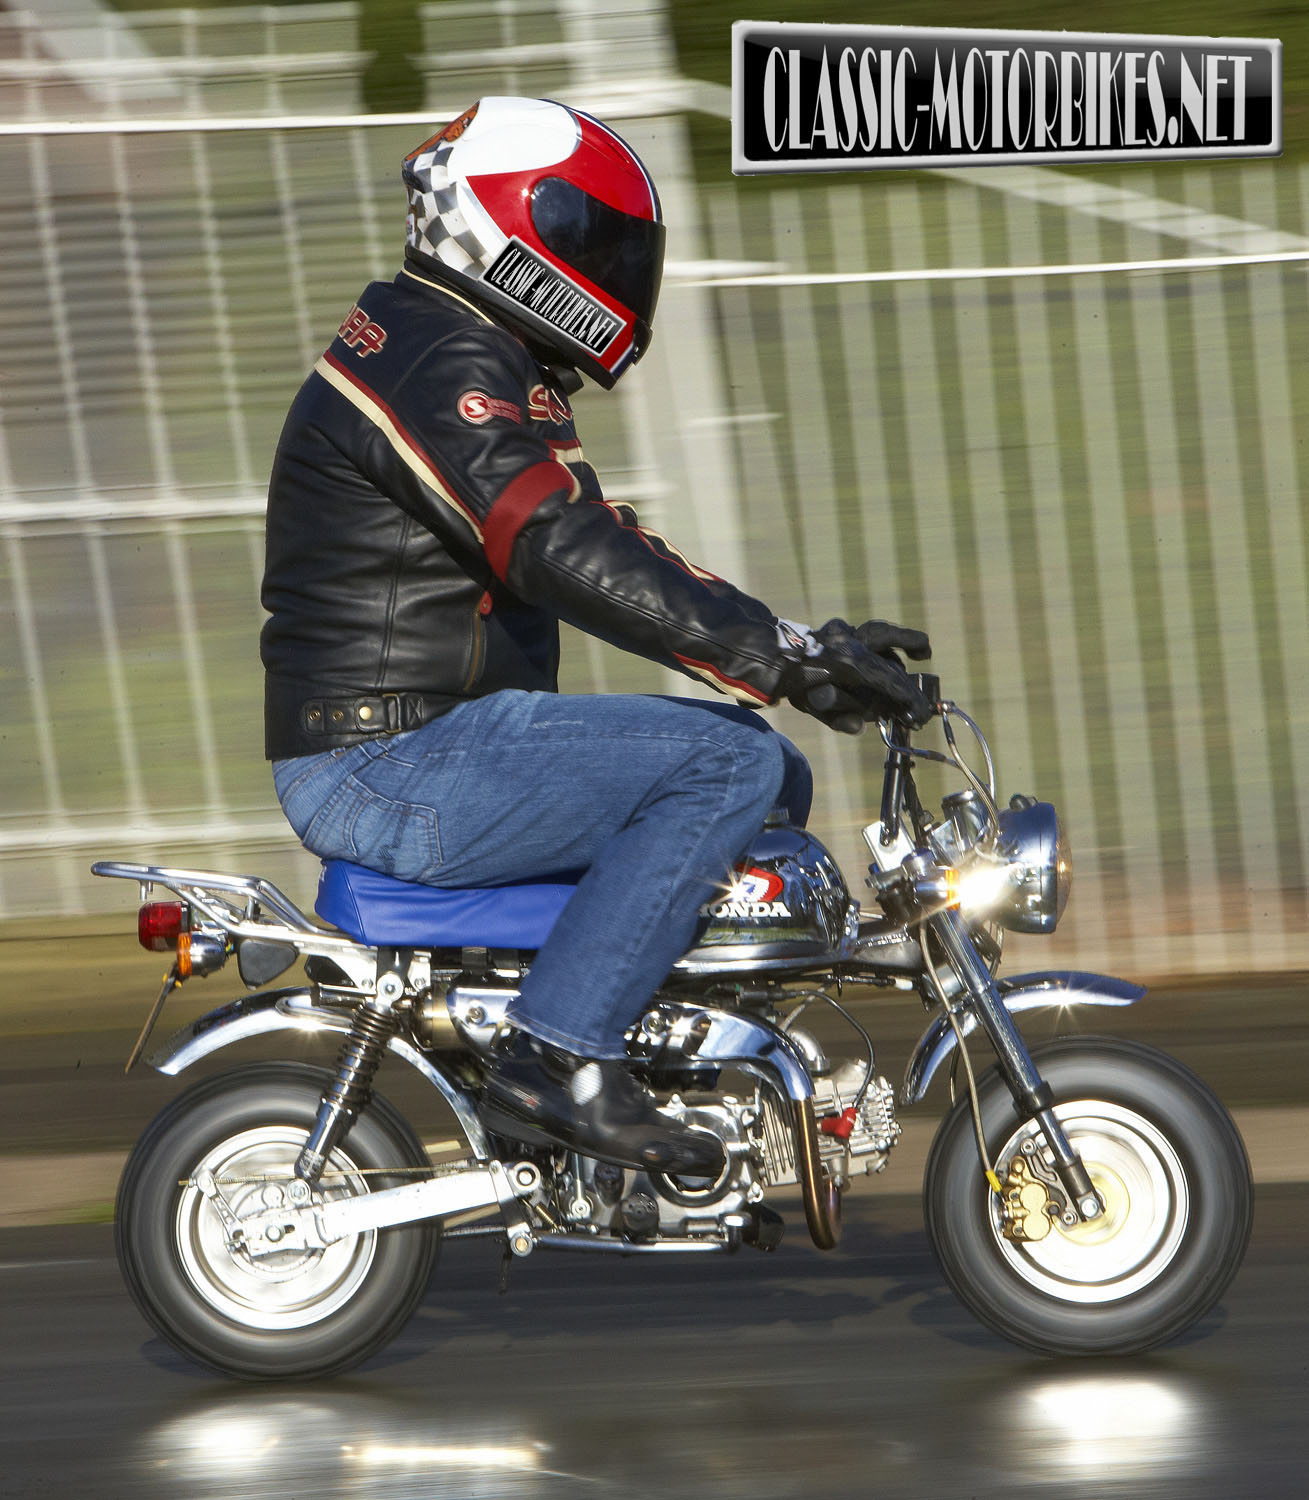 Honda Riding Gear >> Honda Z50 Monkey Bike Road Test - Classic Motorbikes